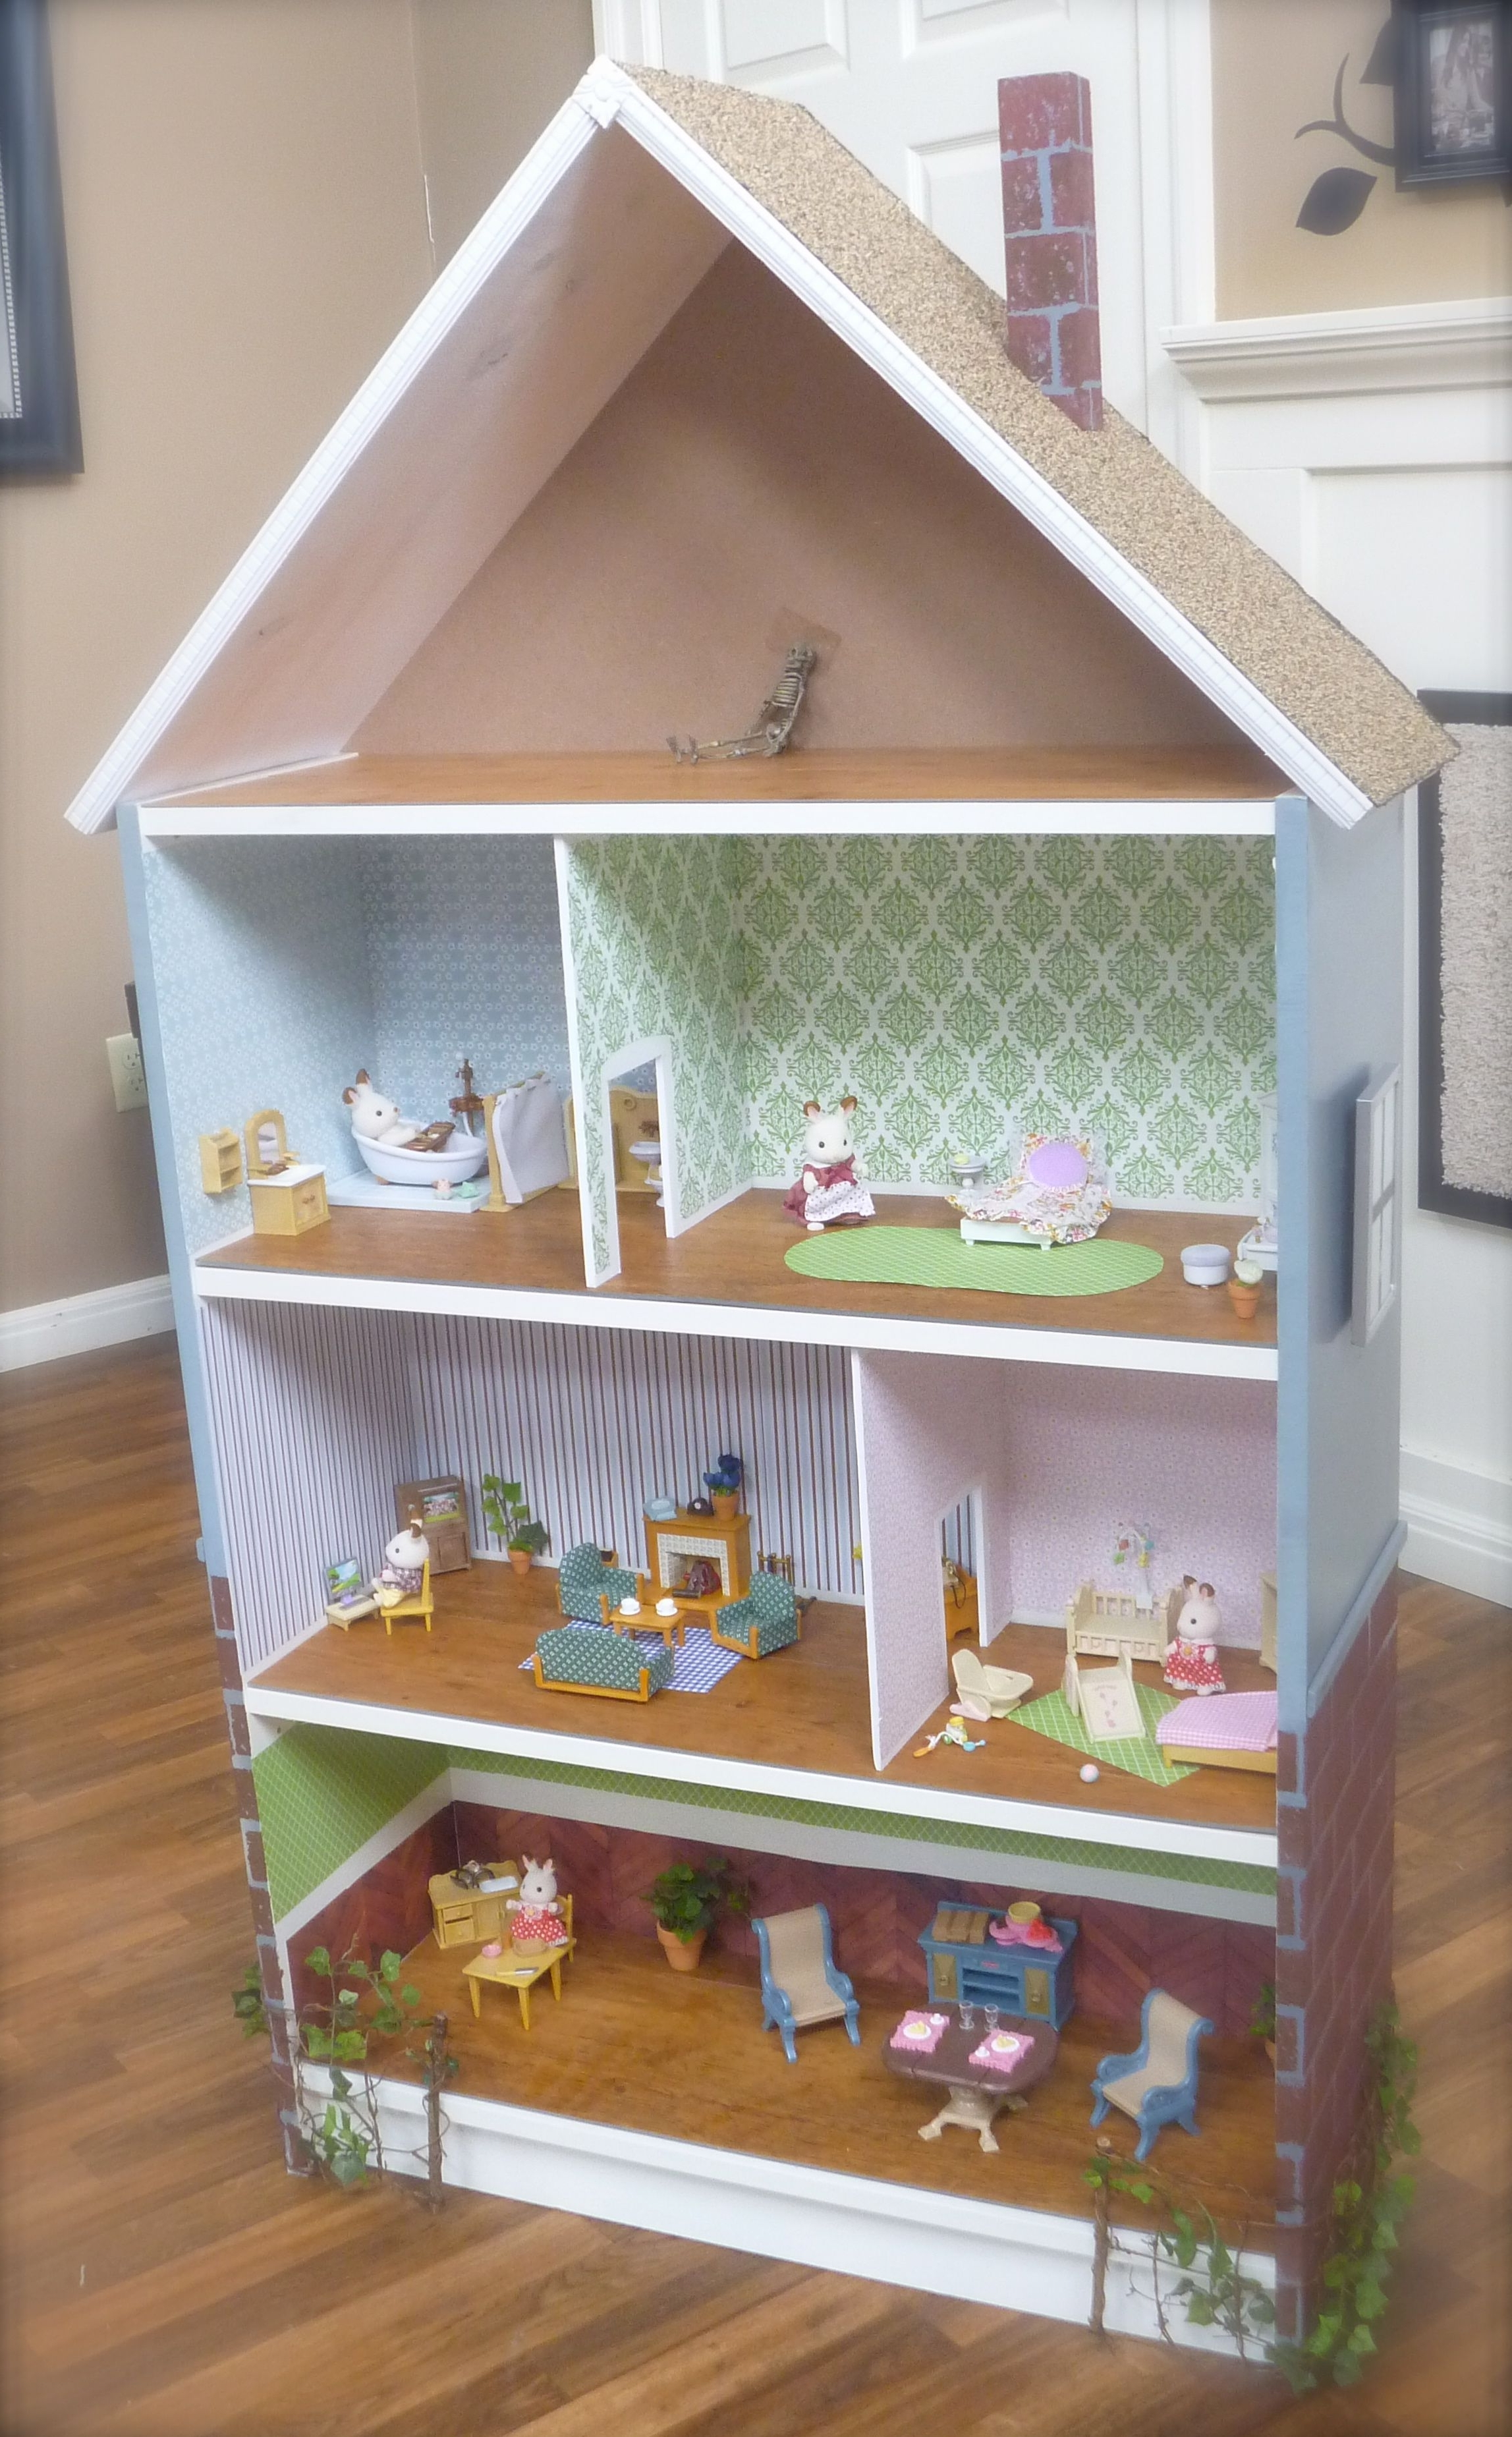 Well Liked Dollhouse Bookcase: Beach Cottage, Brick Row House — Cute Ikea With Regard To Dollhouse Bookcases (View 15 of 15)